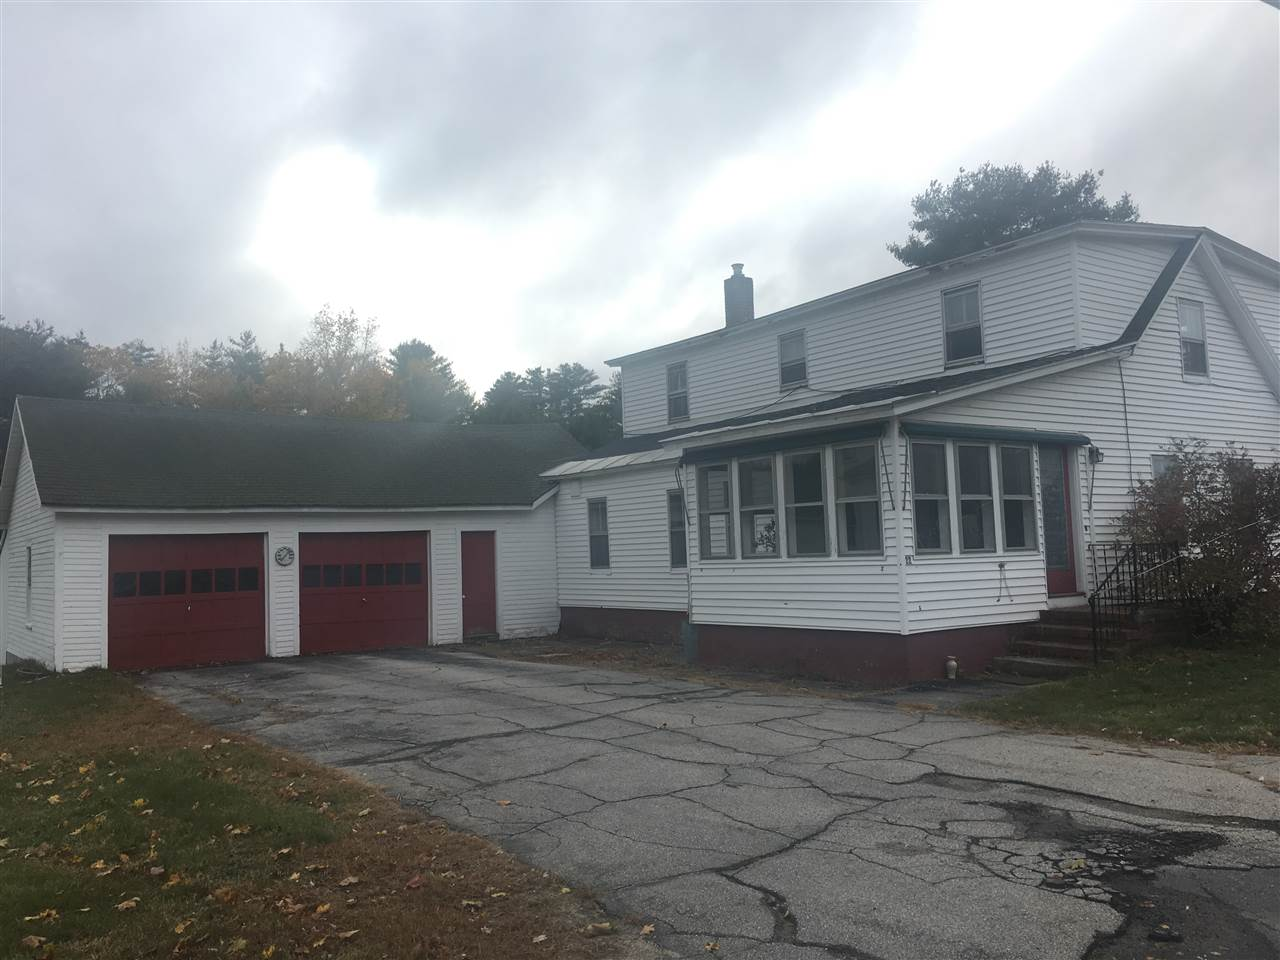 NEW DURHAM NH Homes for sale